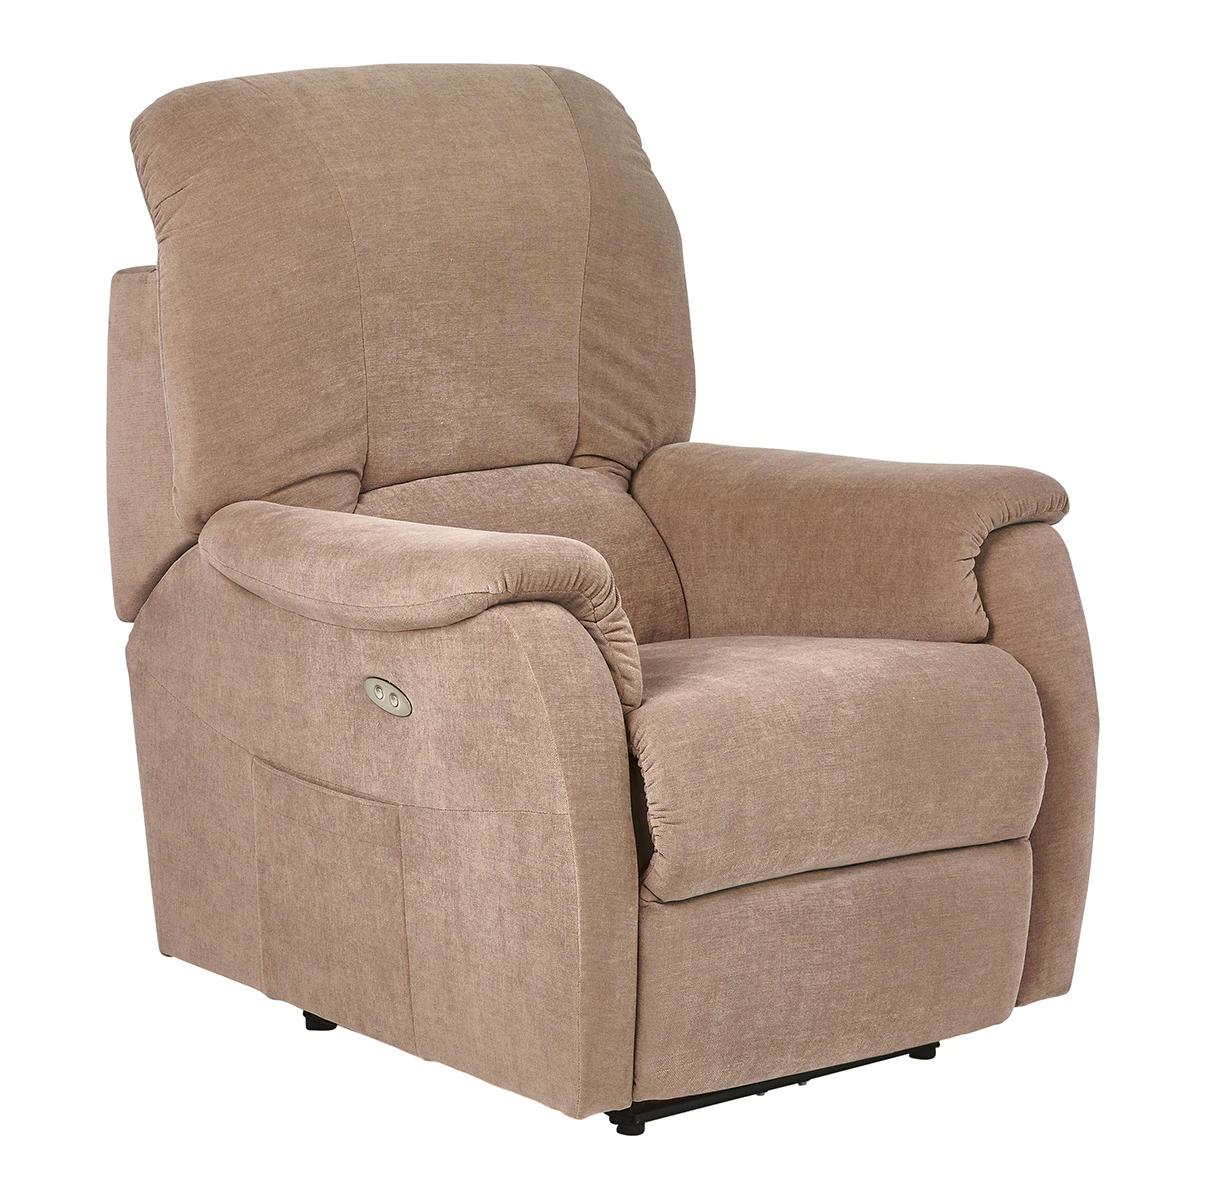 Upholstered electric relax armchair